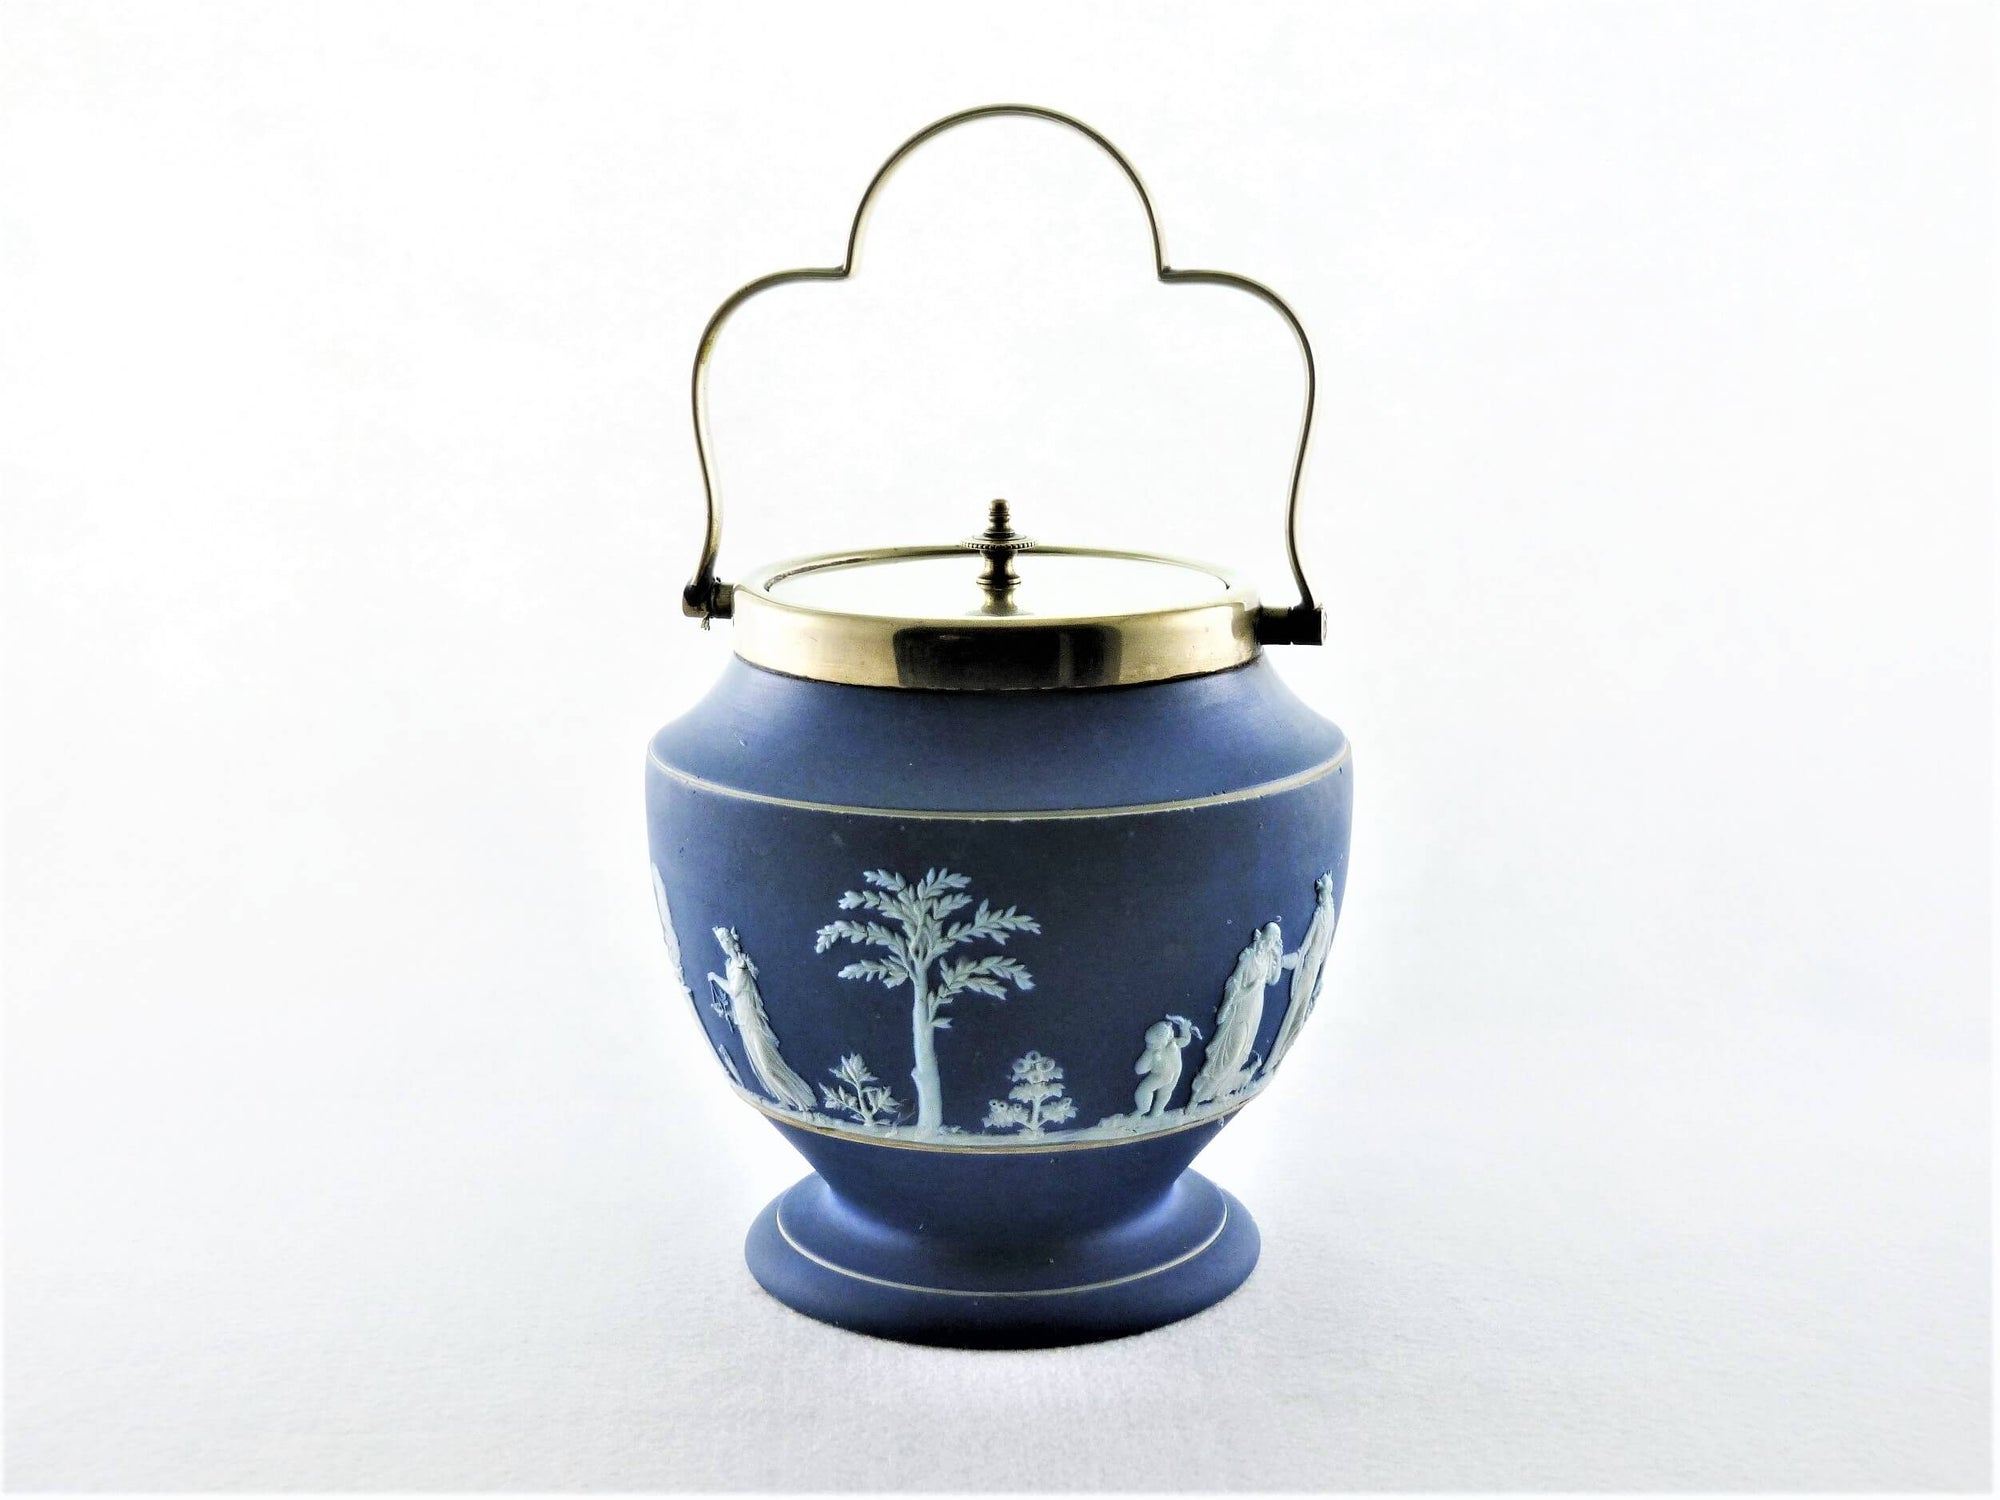 Wedgwood Jasperware Biscuit Barrel, 1881, Very Attractive